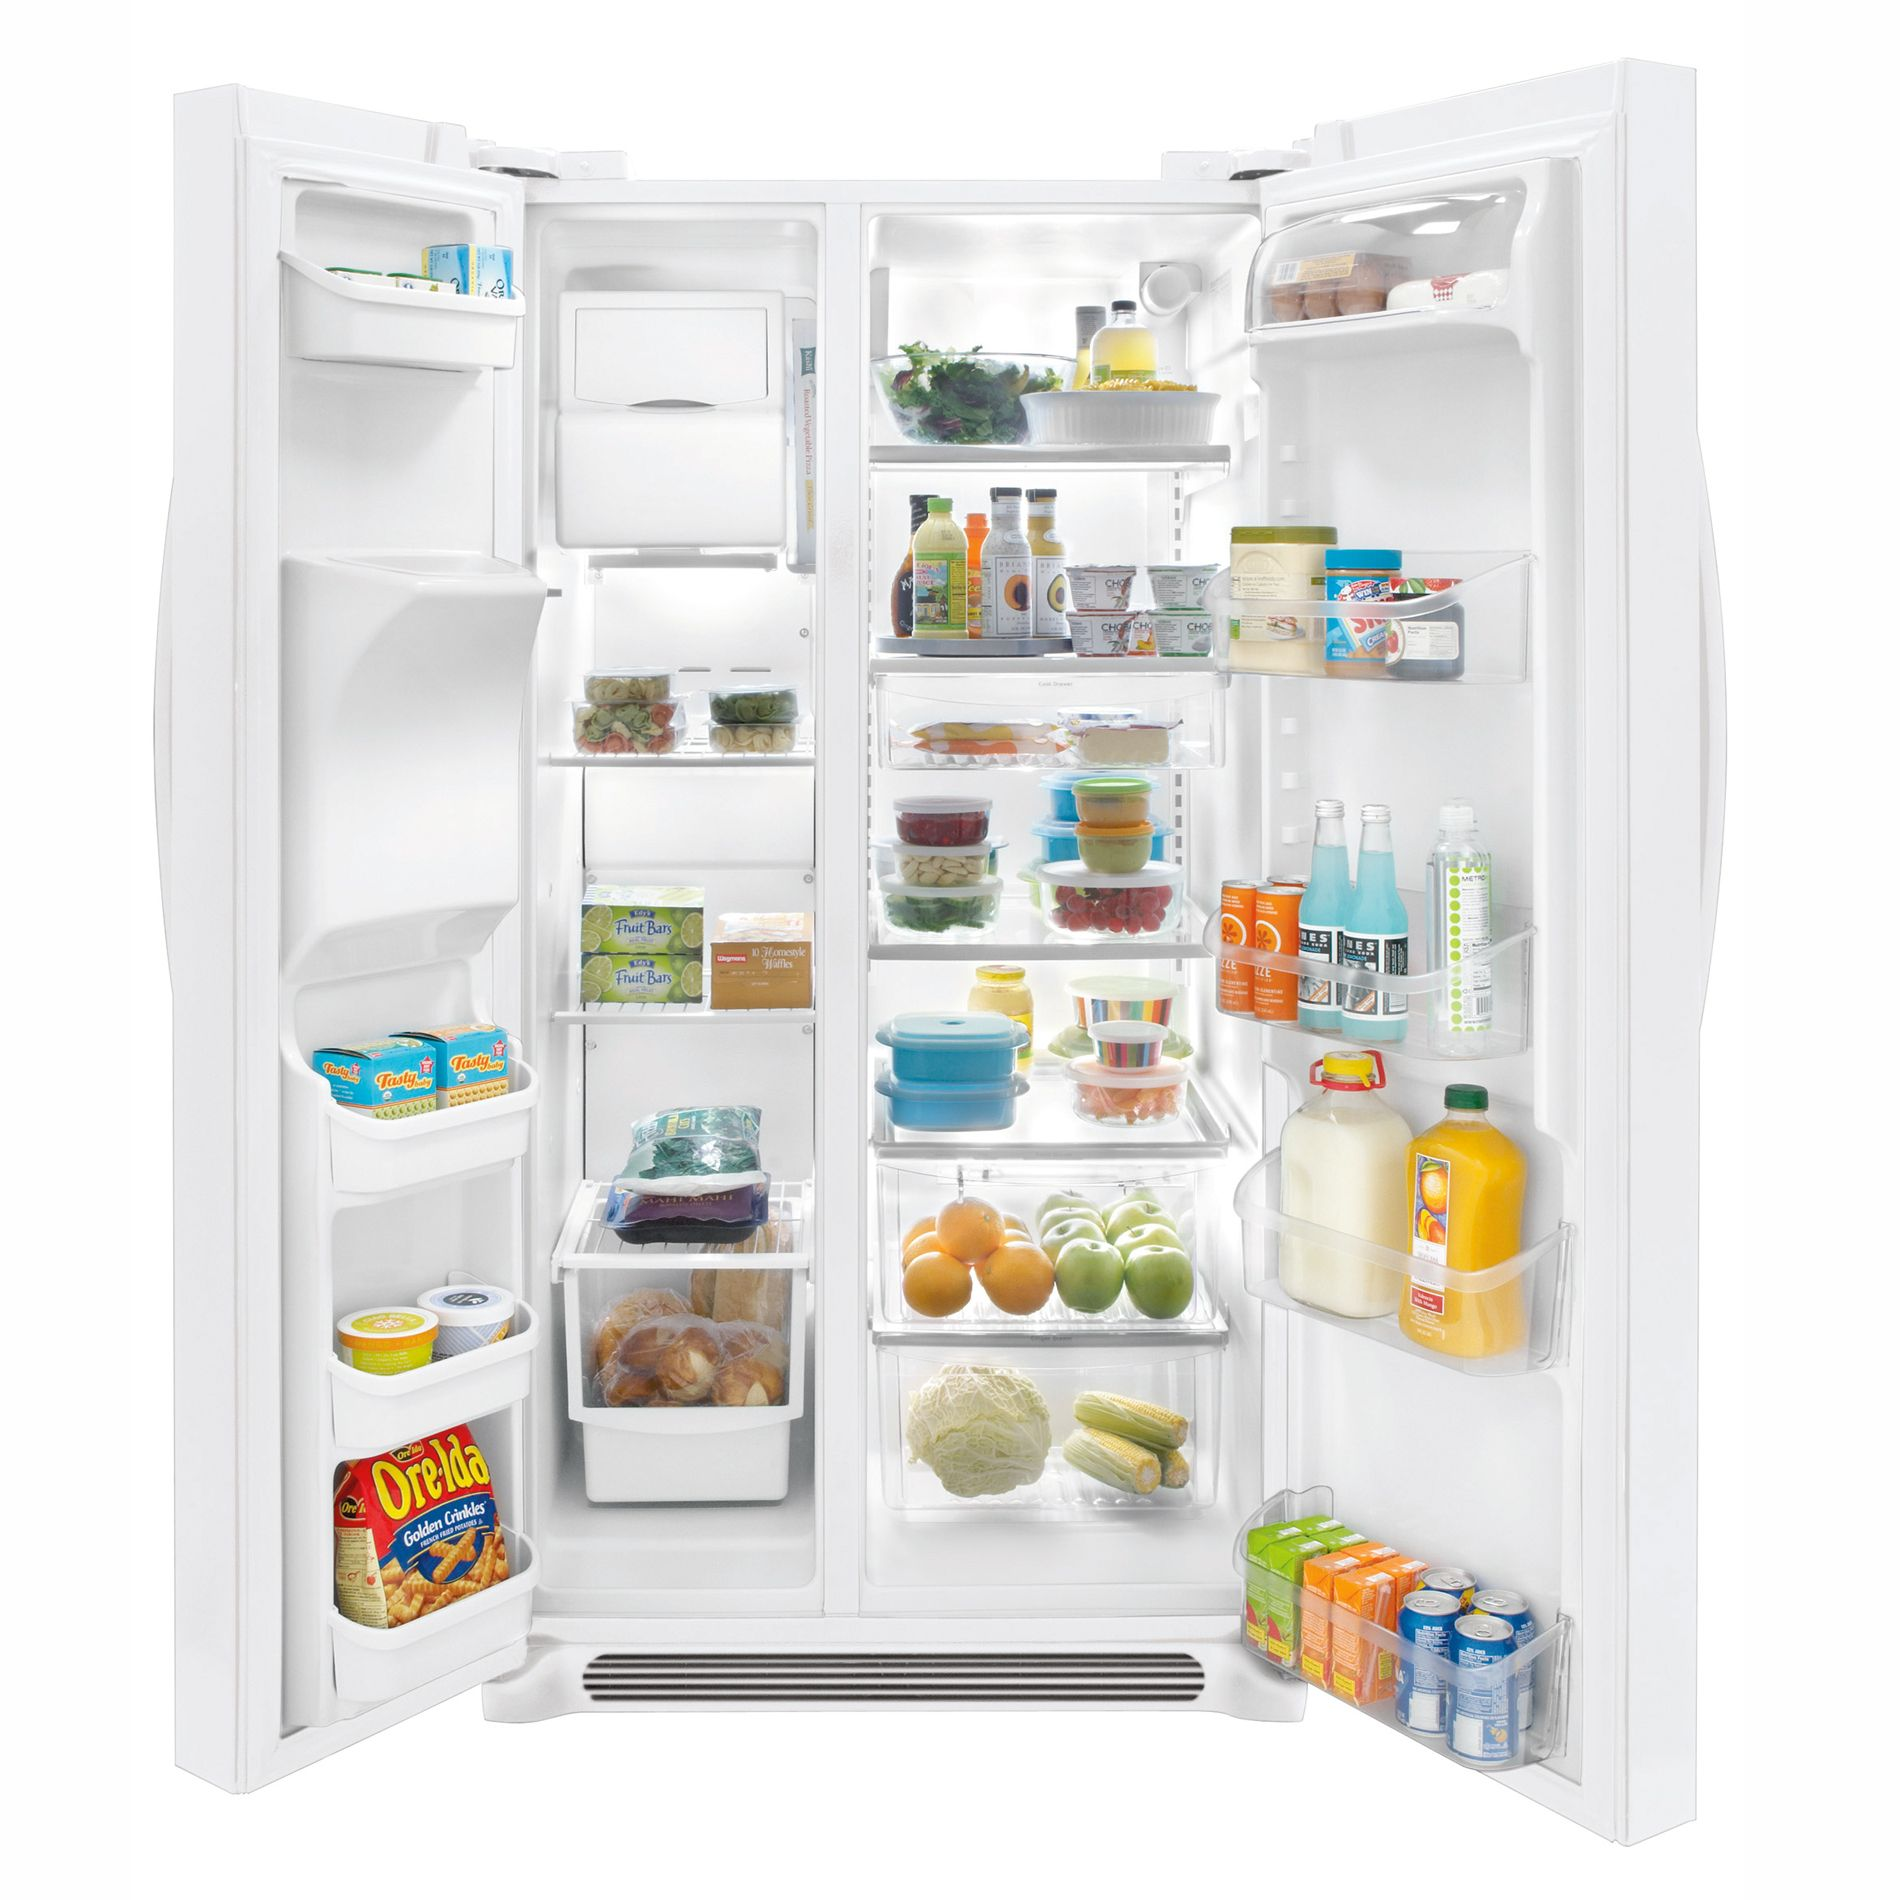 Frigidaire Gallery 26.0 cu. ft. Side-by-Side Refrigerator - Pearl White